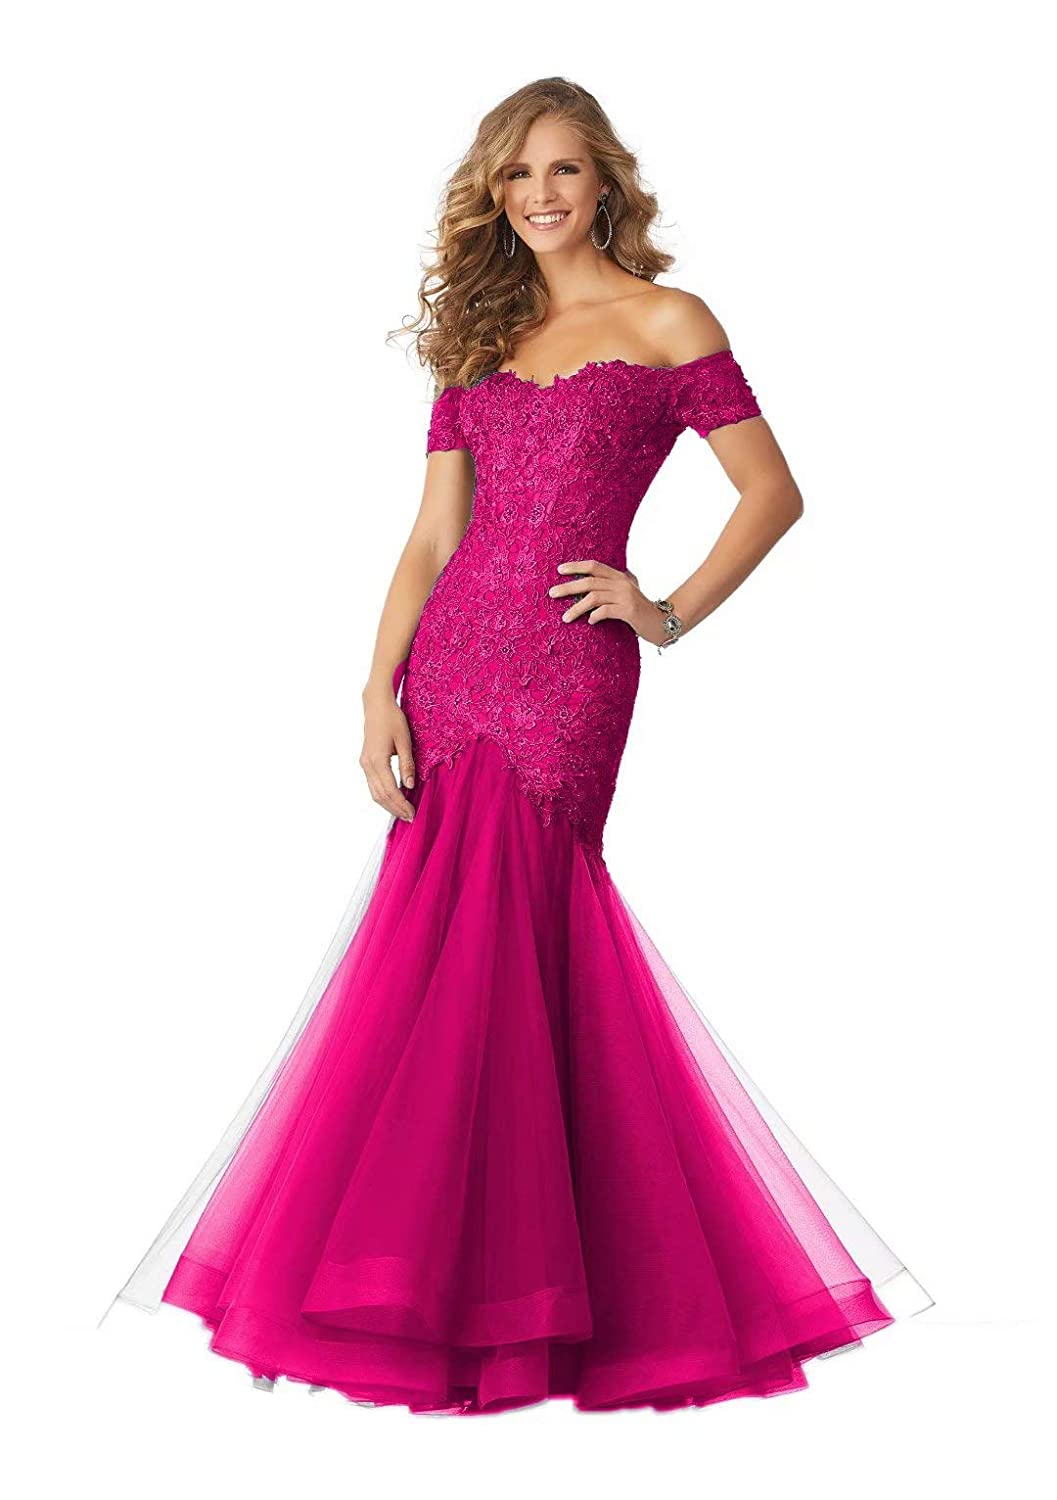 color 5 Unions Women's Off Shoulder Sexy Mermaid Long Formal Dresses Tulle Lace Applique Evening Prom Gown